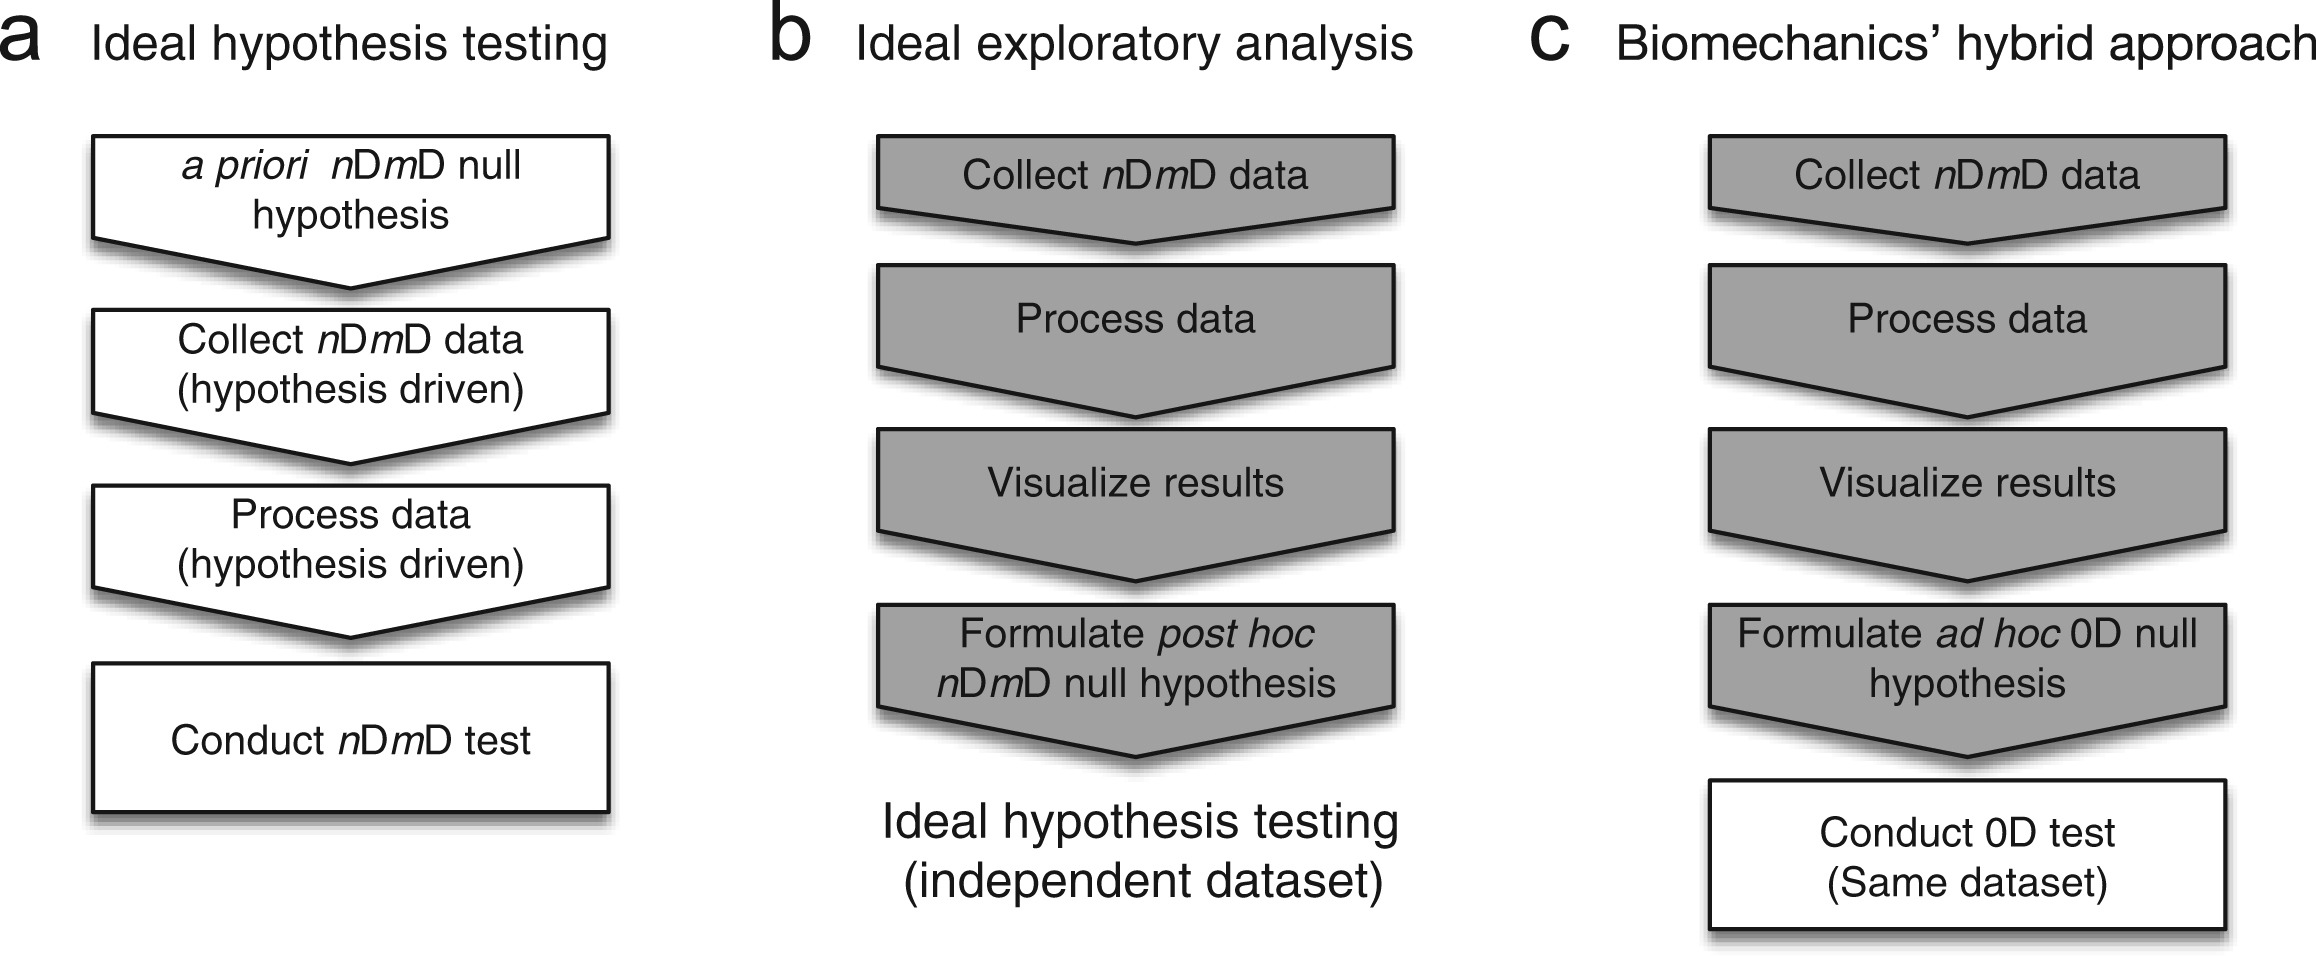 the probability of false positives in zero dimensional analyses of